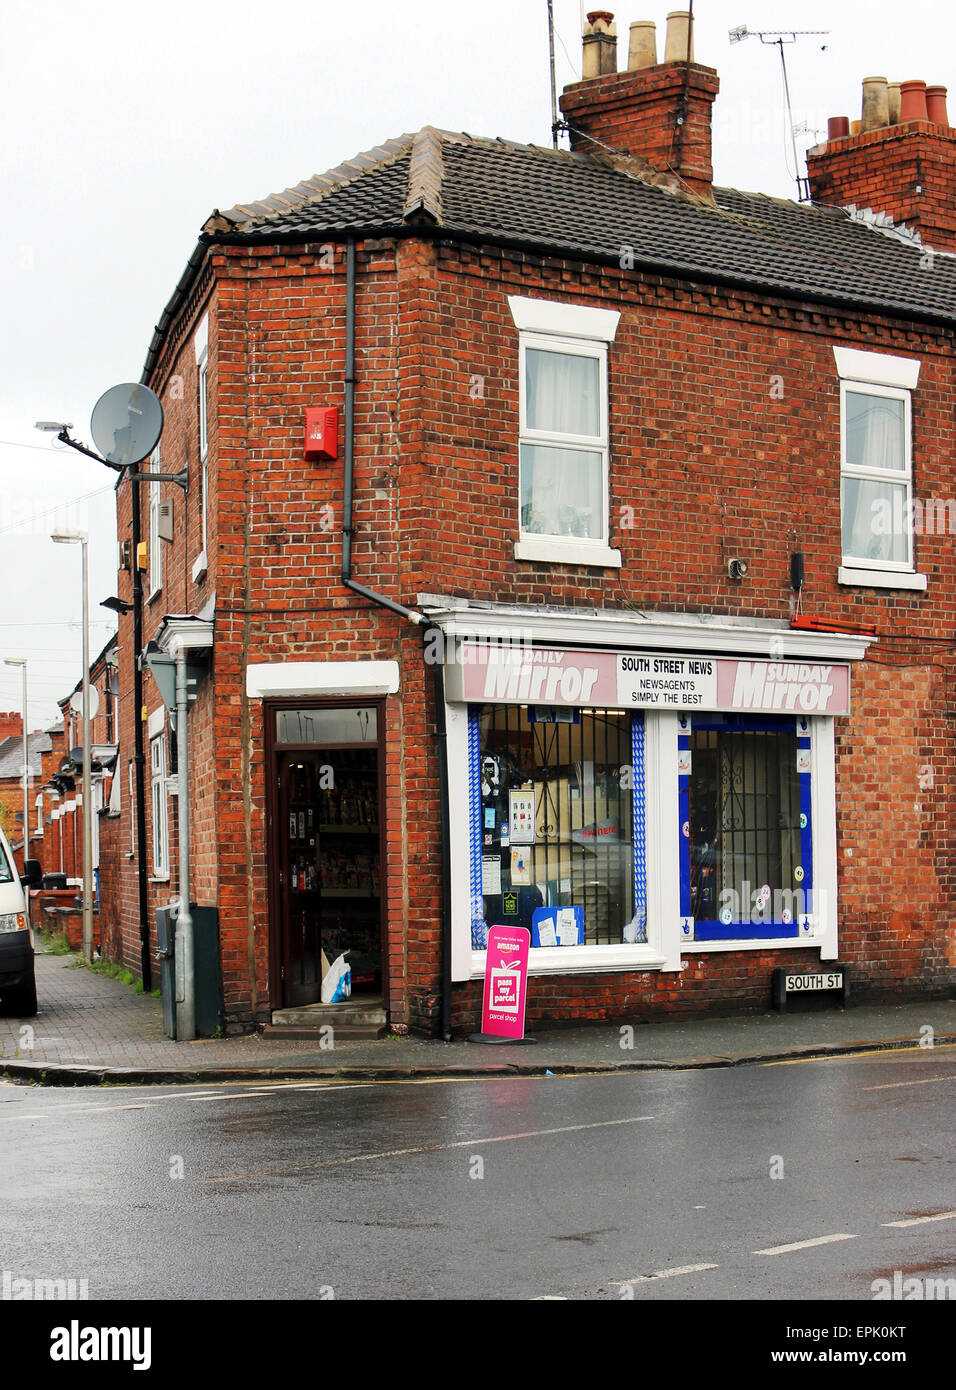 A street corner newsagent's shop on South Street in Crewe in Cheshire England. - Stock Image